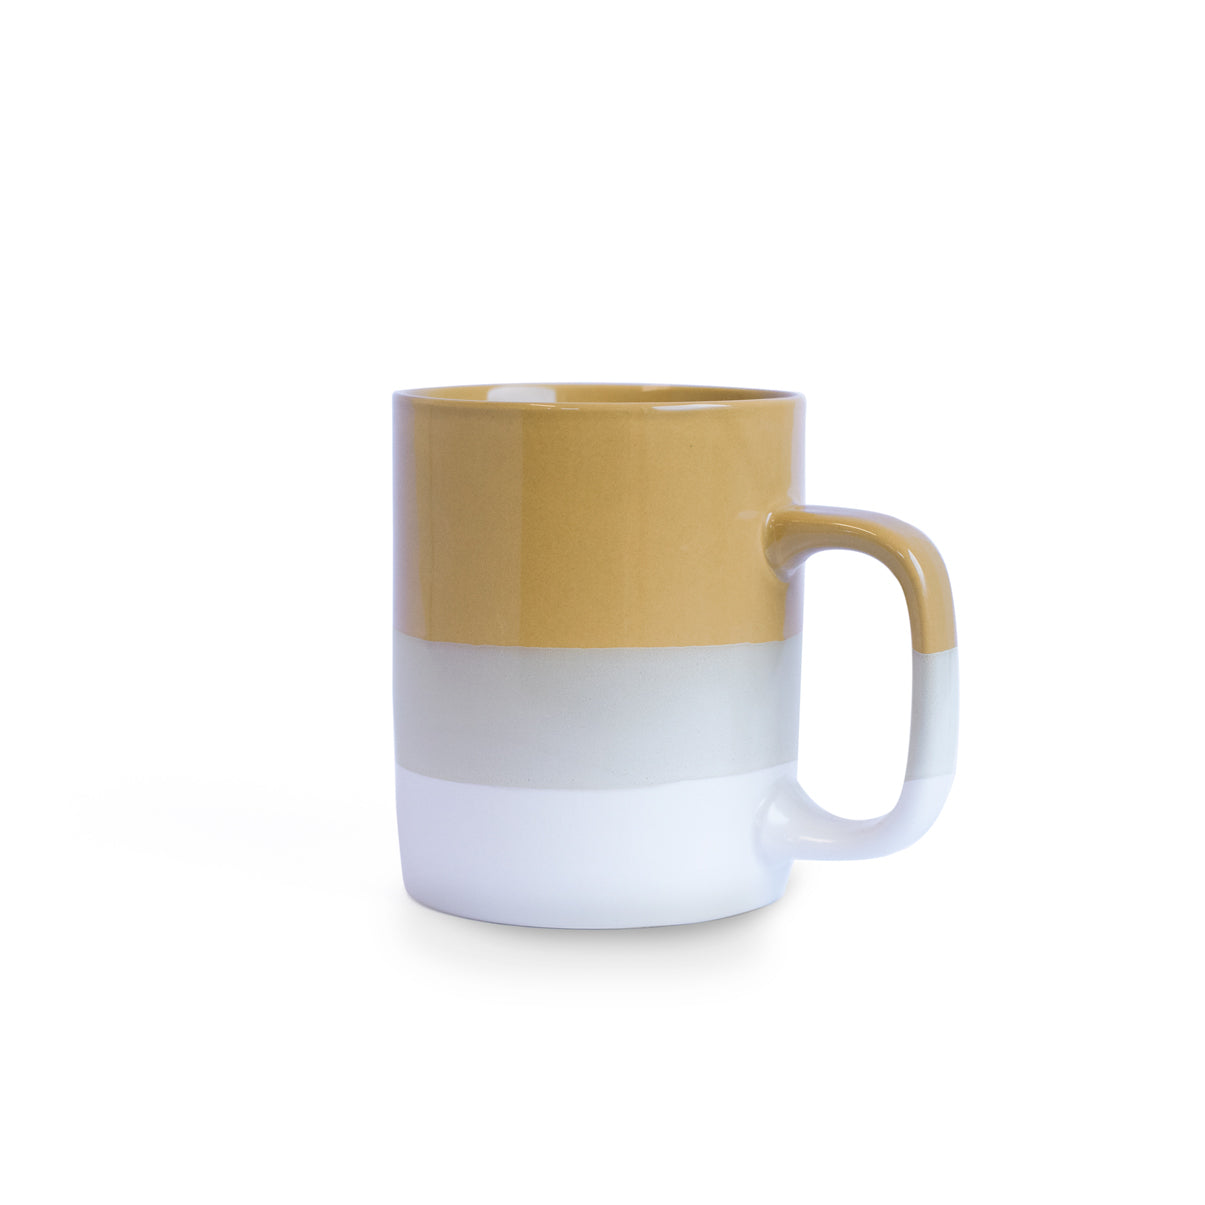 Mustard Yellow & White Mug